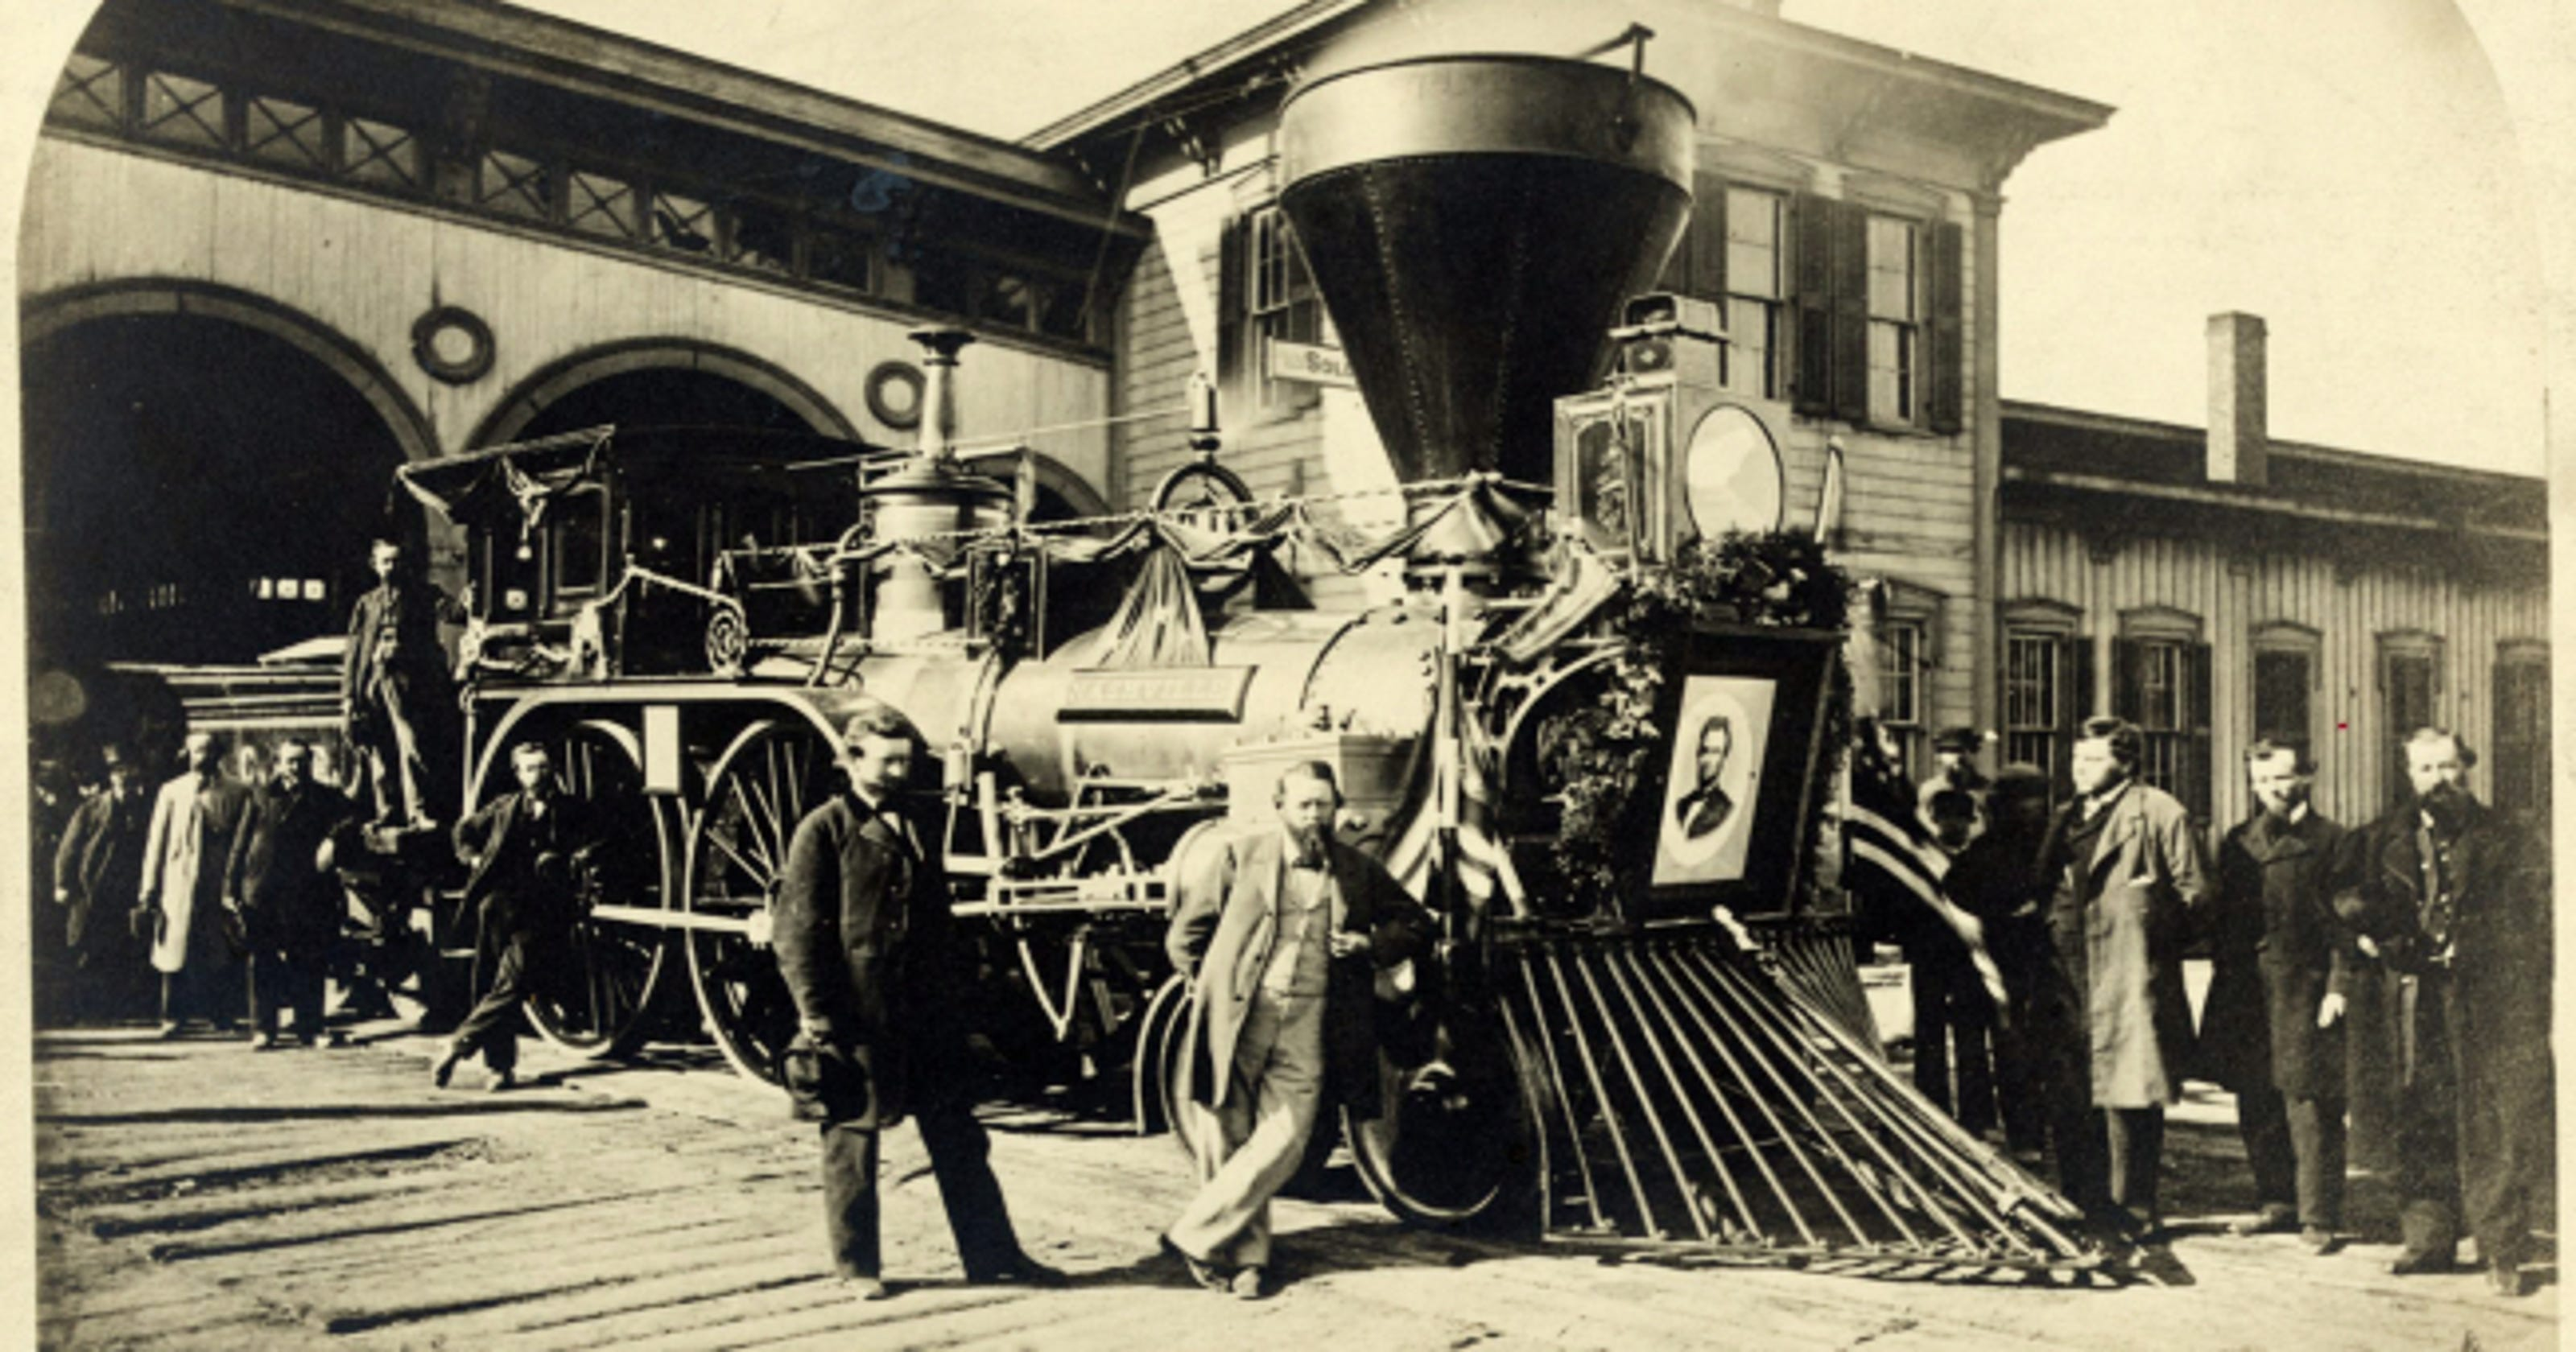 Lincoln's funeral train stopped in New Freedom, York